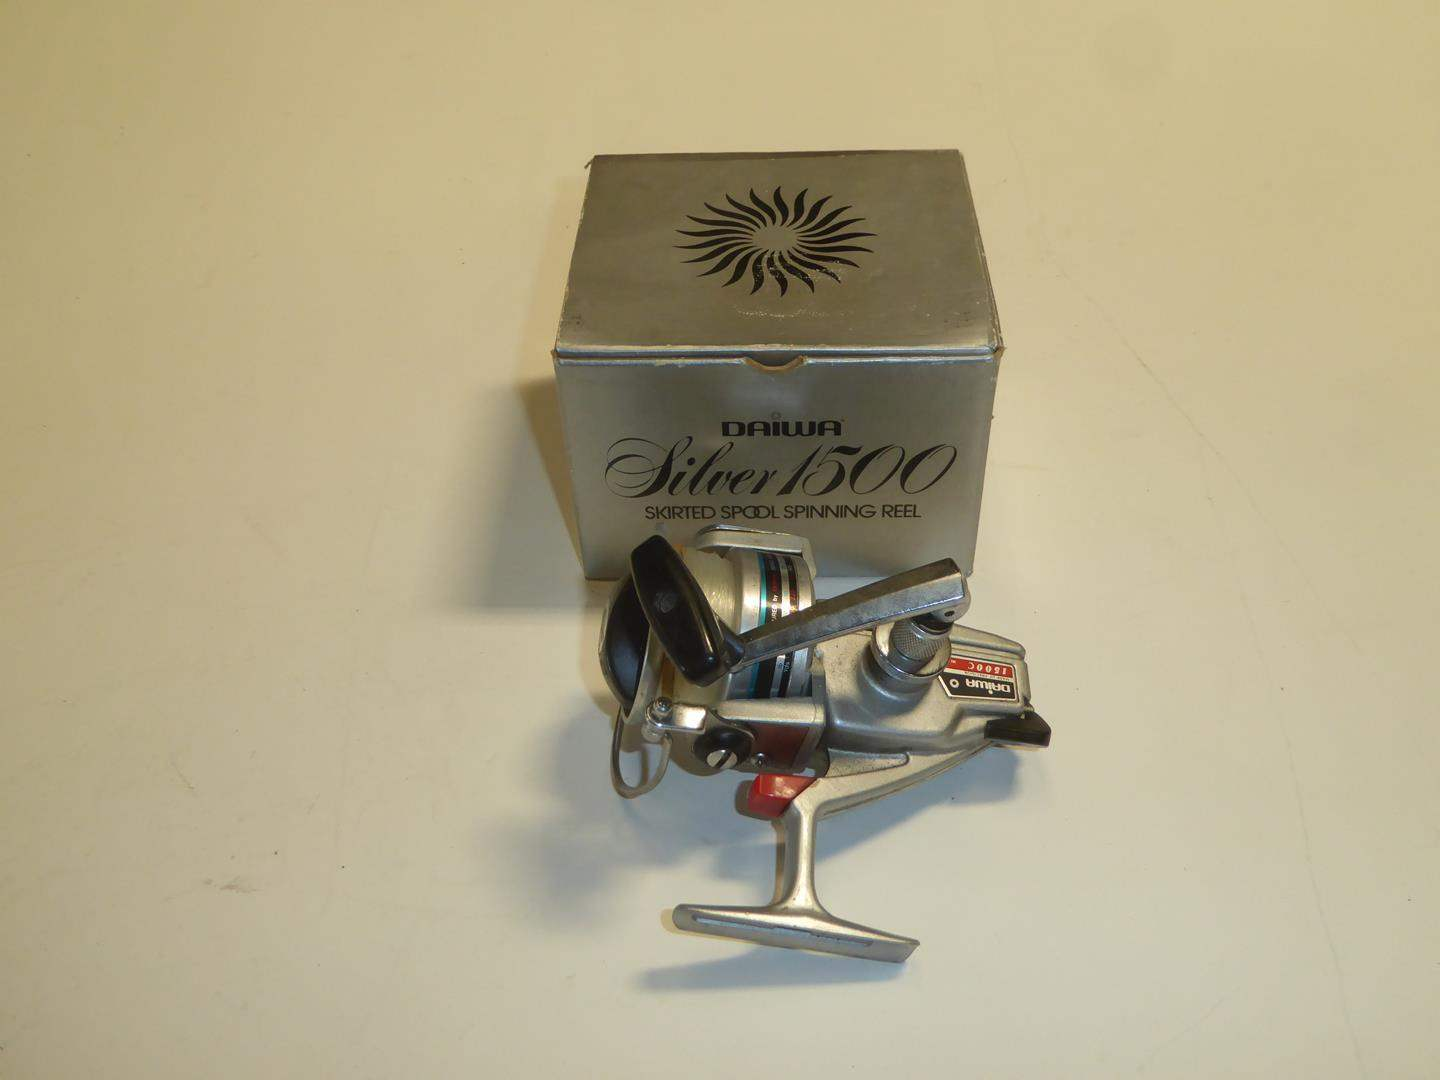 Lot # 85 - Daiwa Silver 1500 Skirted Spool Spinning Reel (main image)